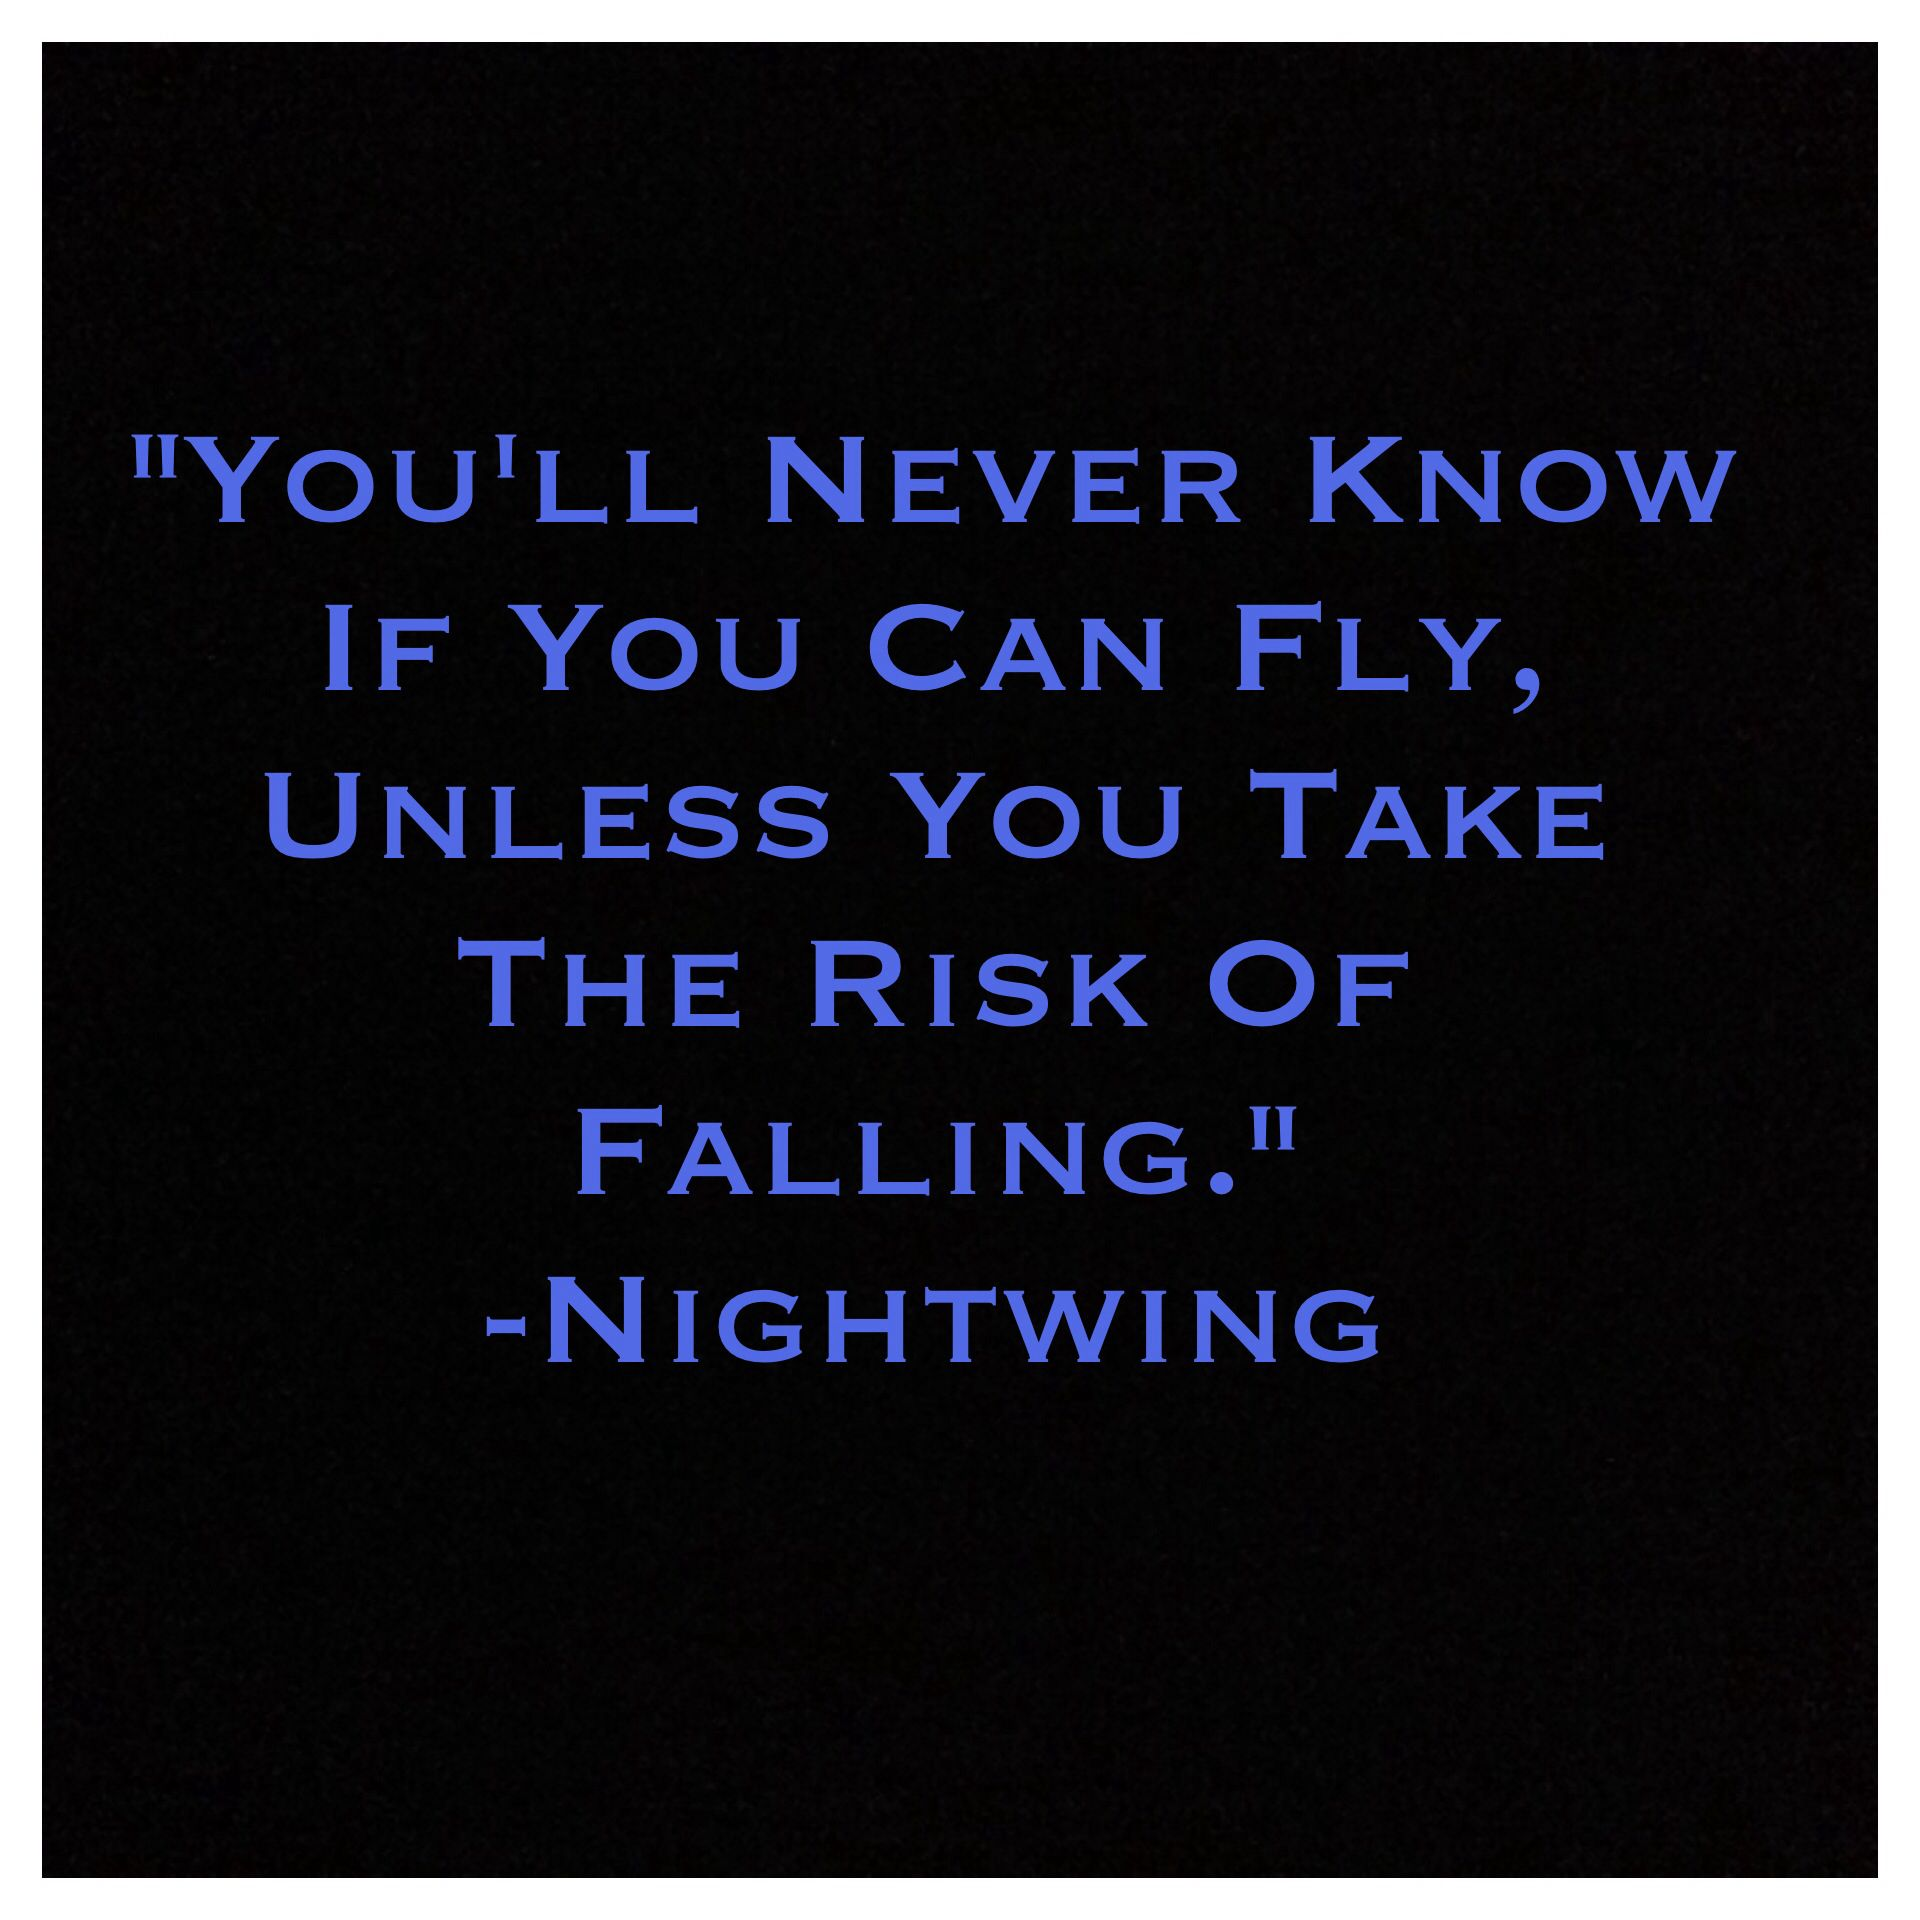 One of my favorite Nightwing quotes